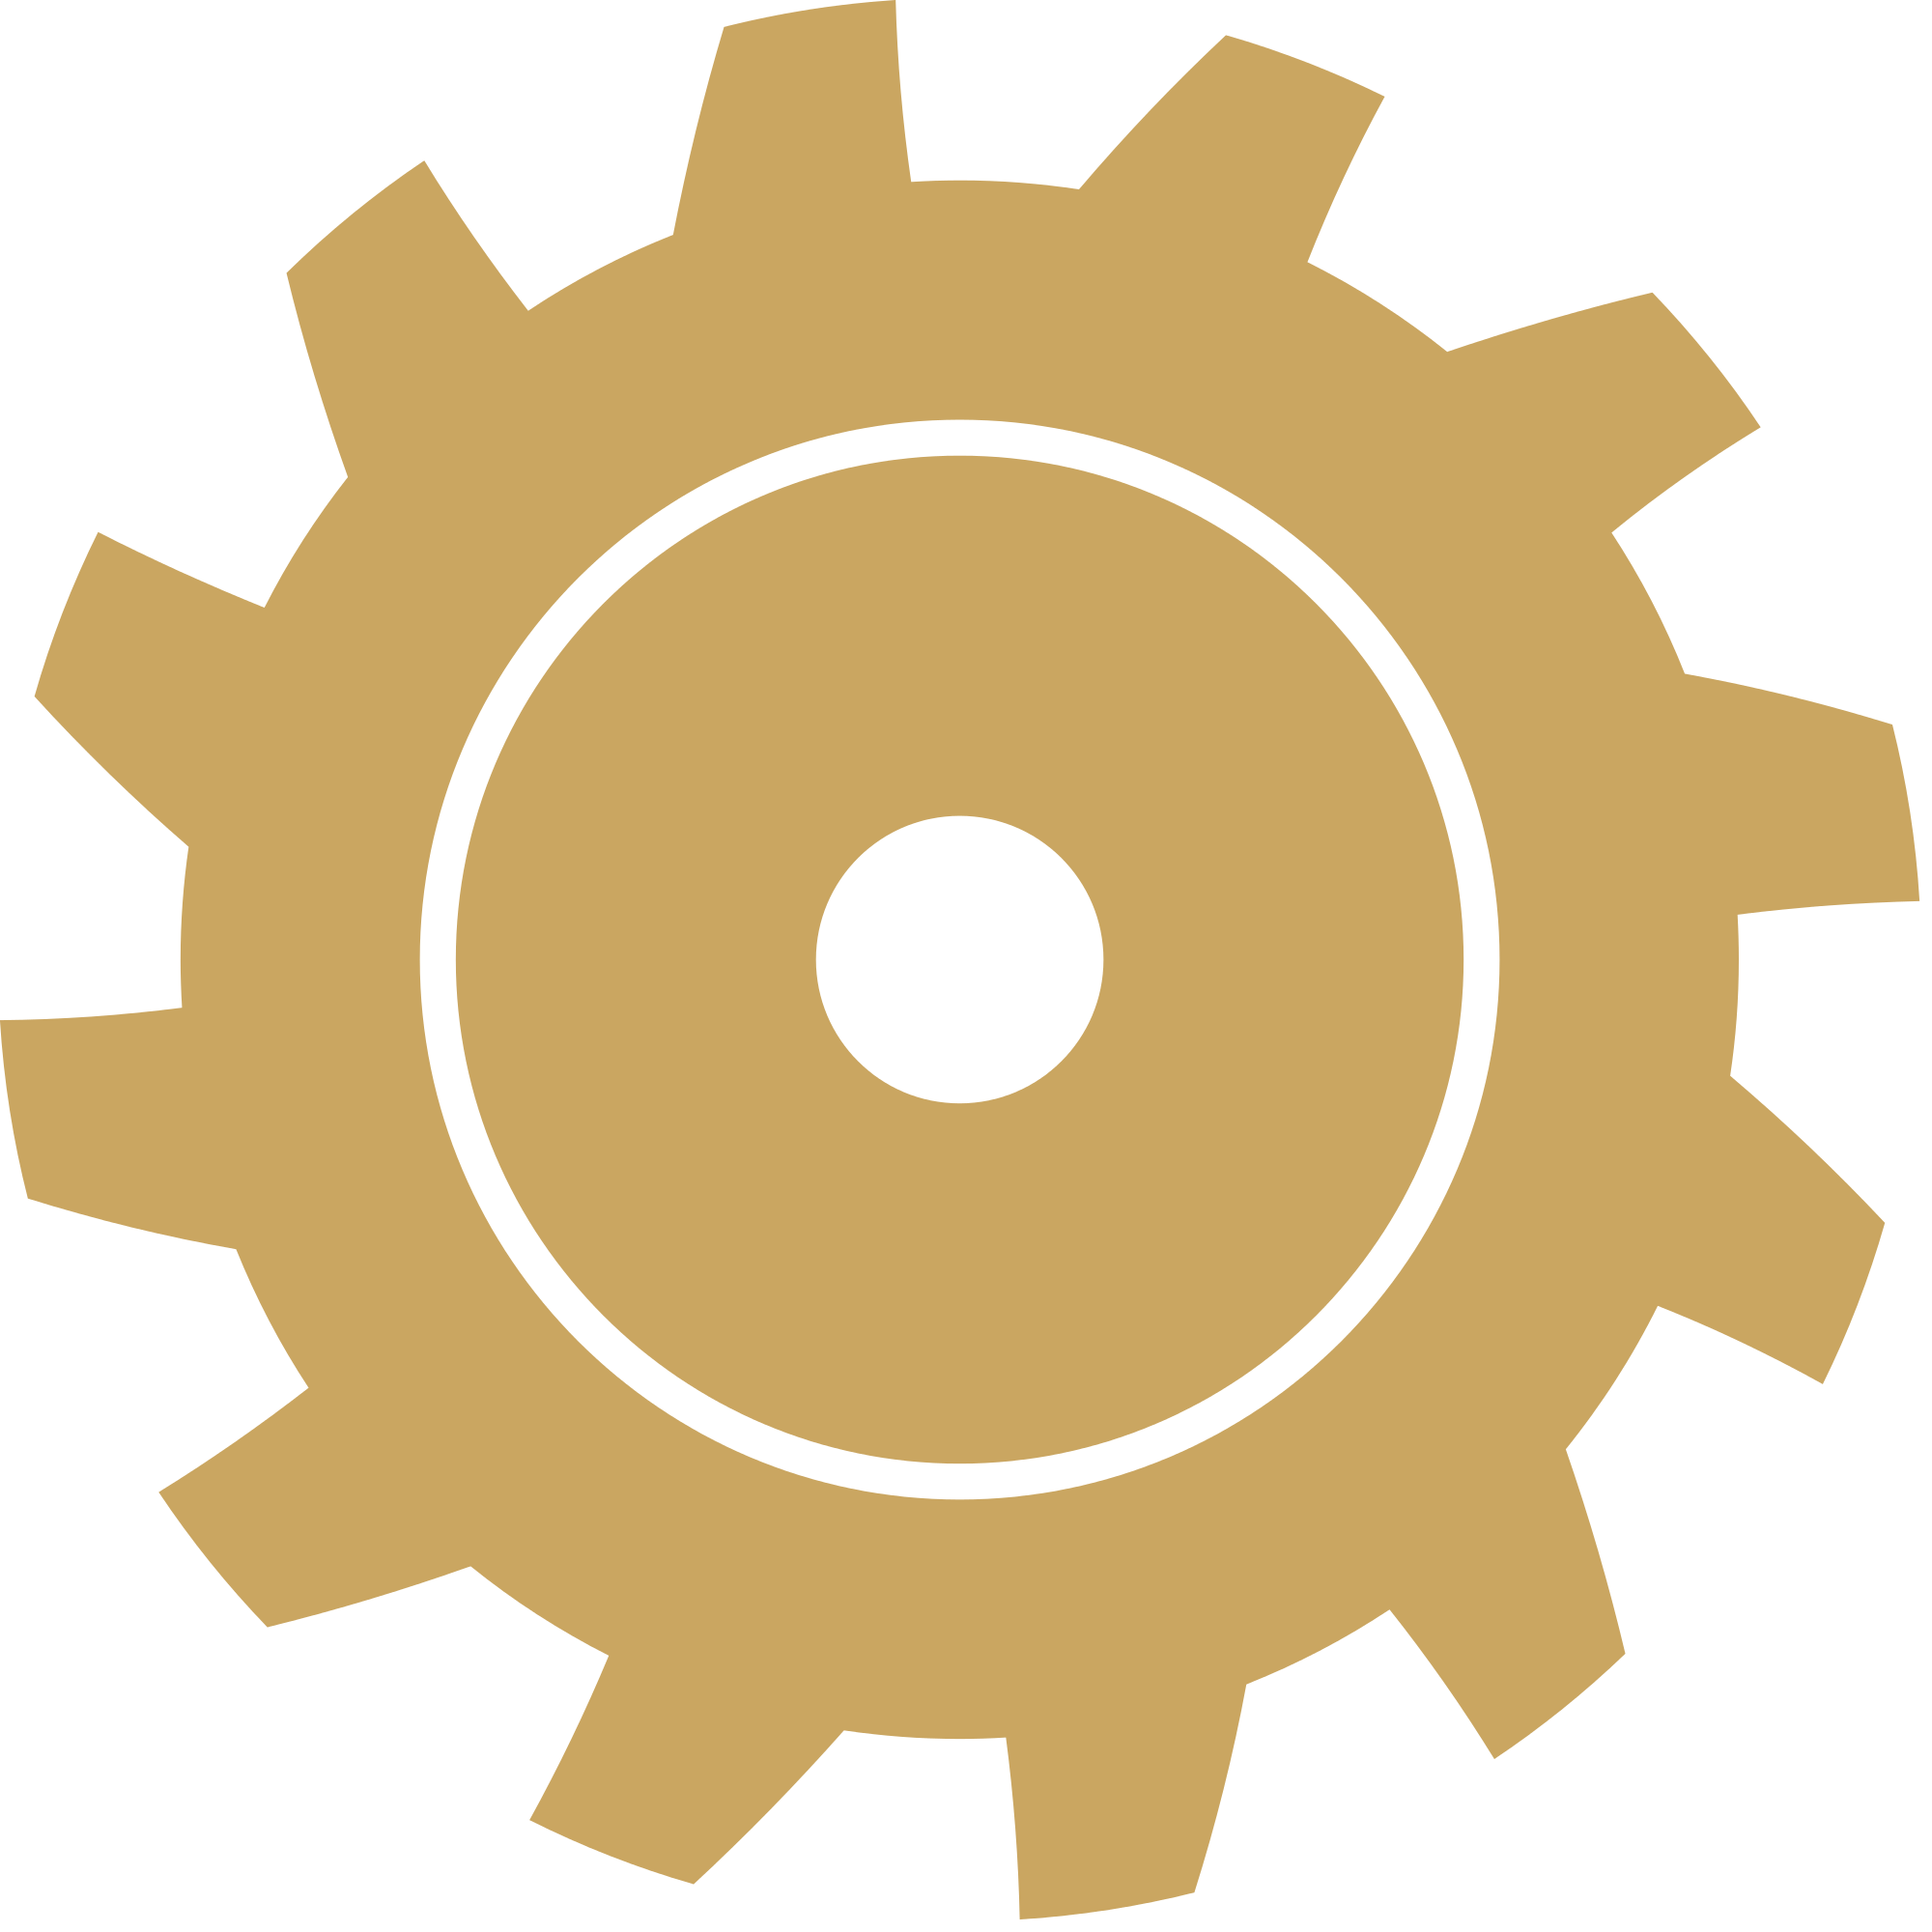 Gear clipart yellow gear. File shape gold svg